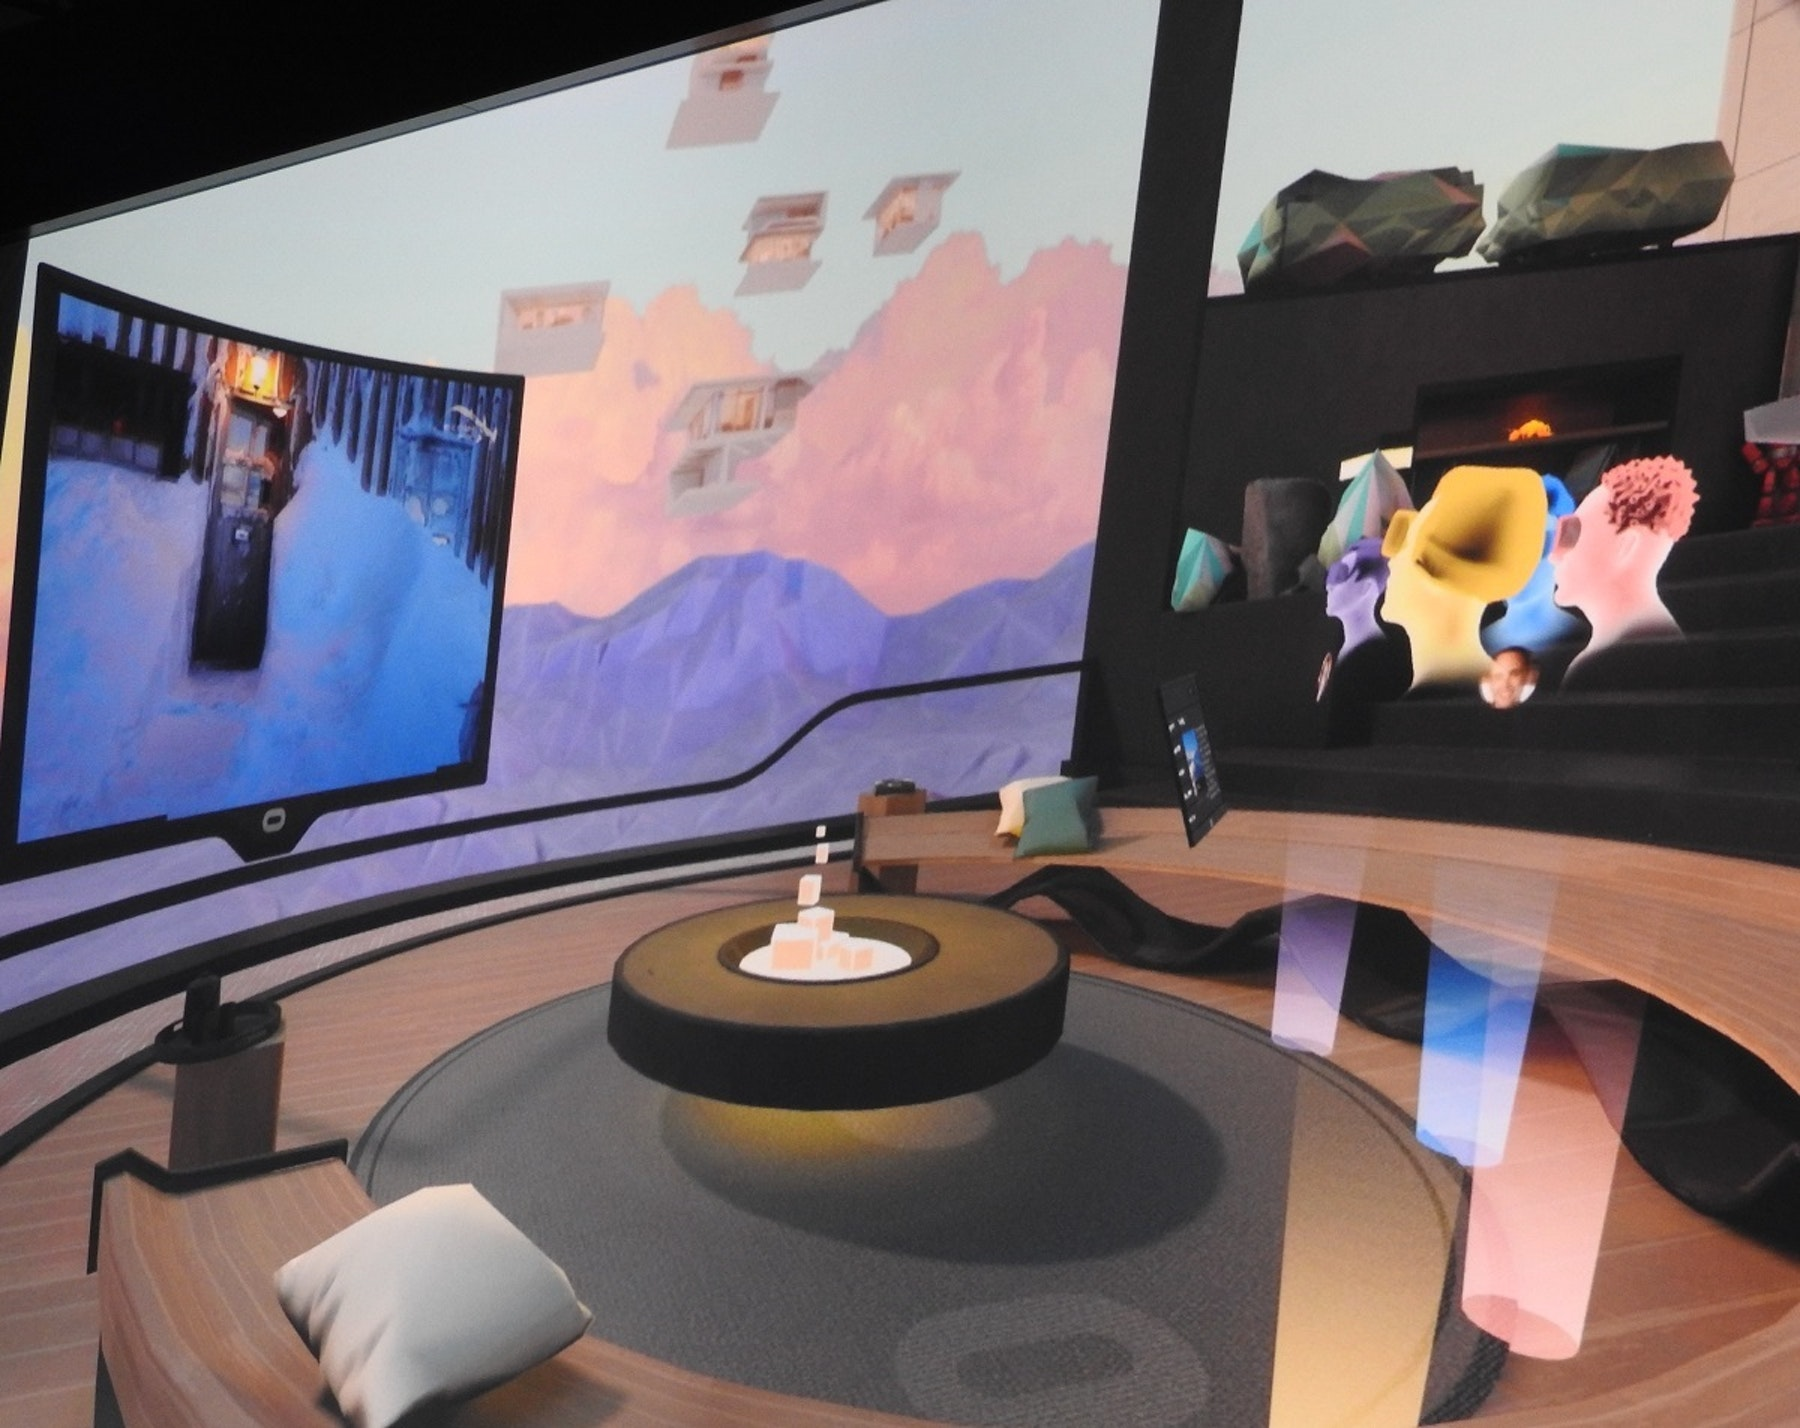 Watching a movie with friends in virtual reality via Oculus Rooms.